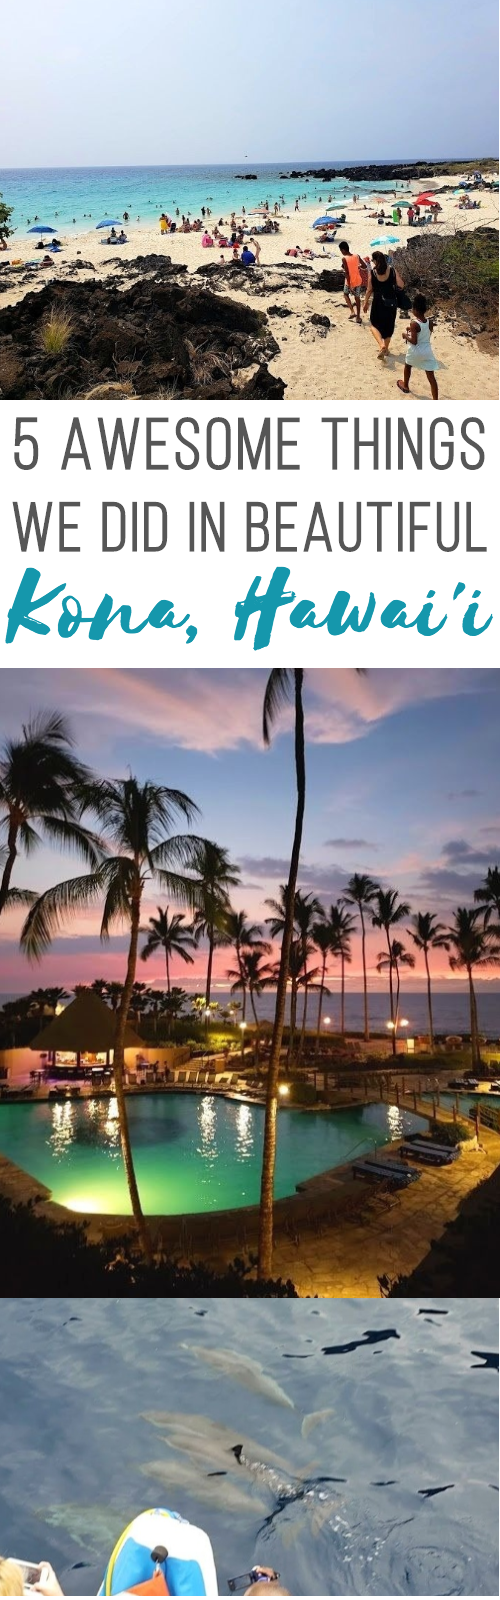 5 Things My Family Did In Kona On Our First Trip To The Big Island of Hawai'i! Kona Hawaii beaches | things to do in kona hawaii | things to do in kailua kona | big island things to do | honeyandime.co